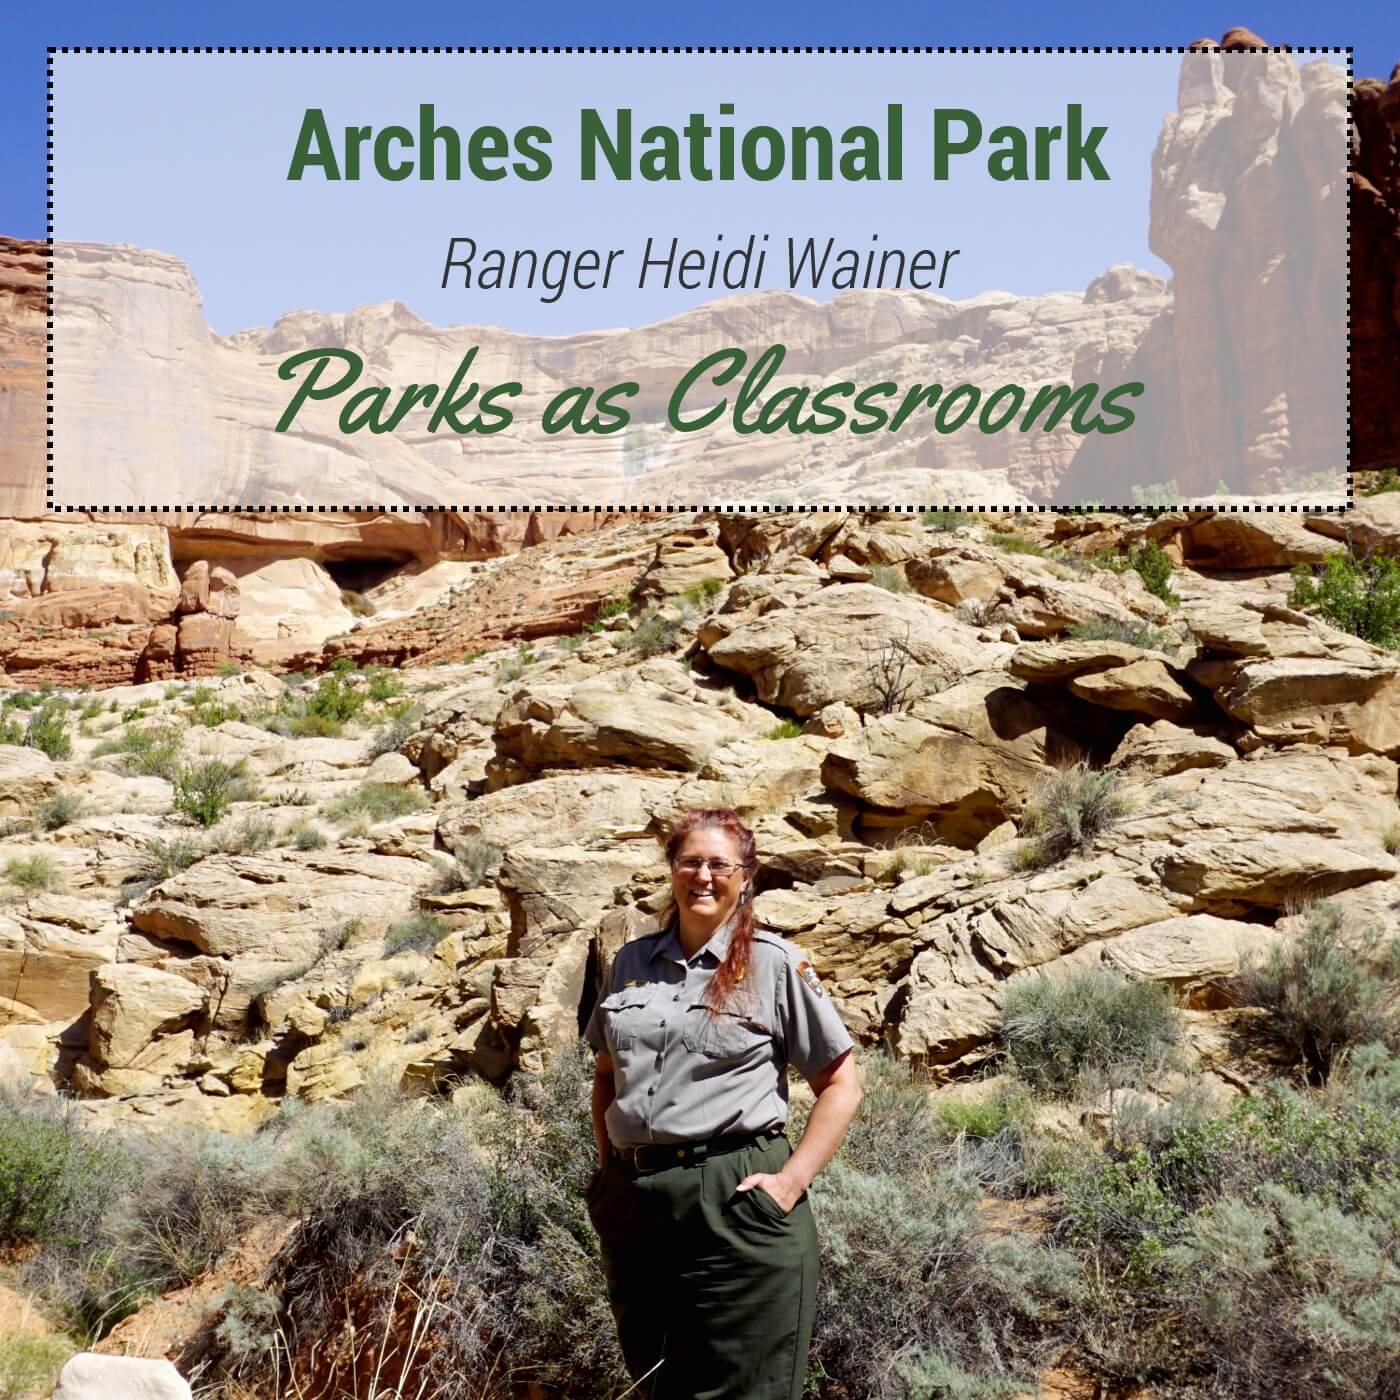 Arches National Park - Ranger Heidi Wainer - Parks as Classrooms